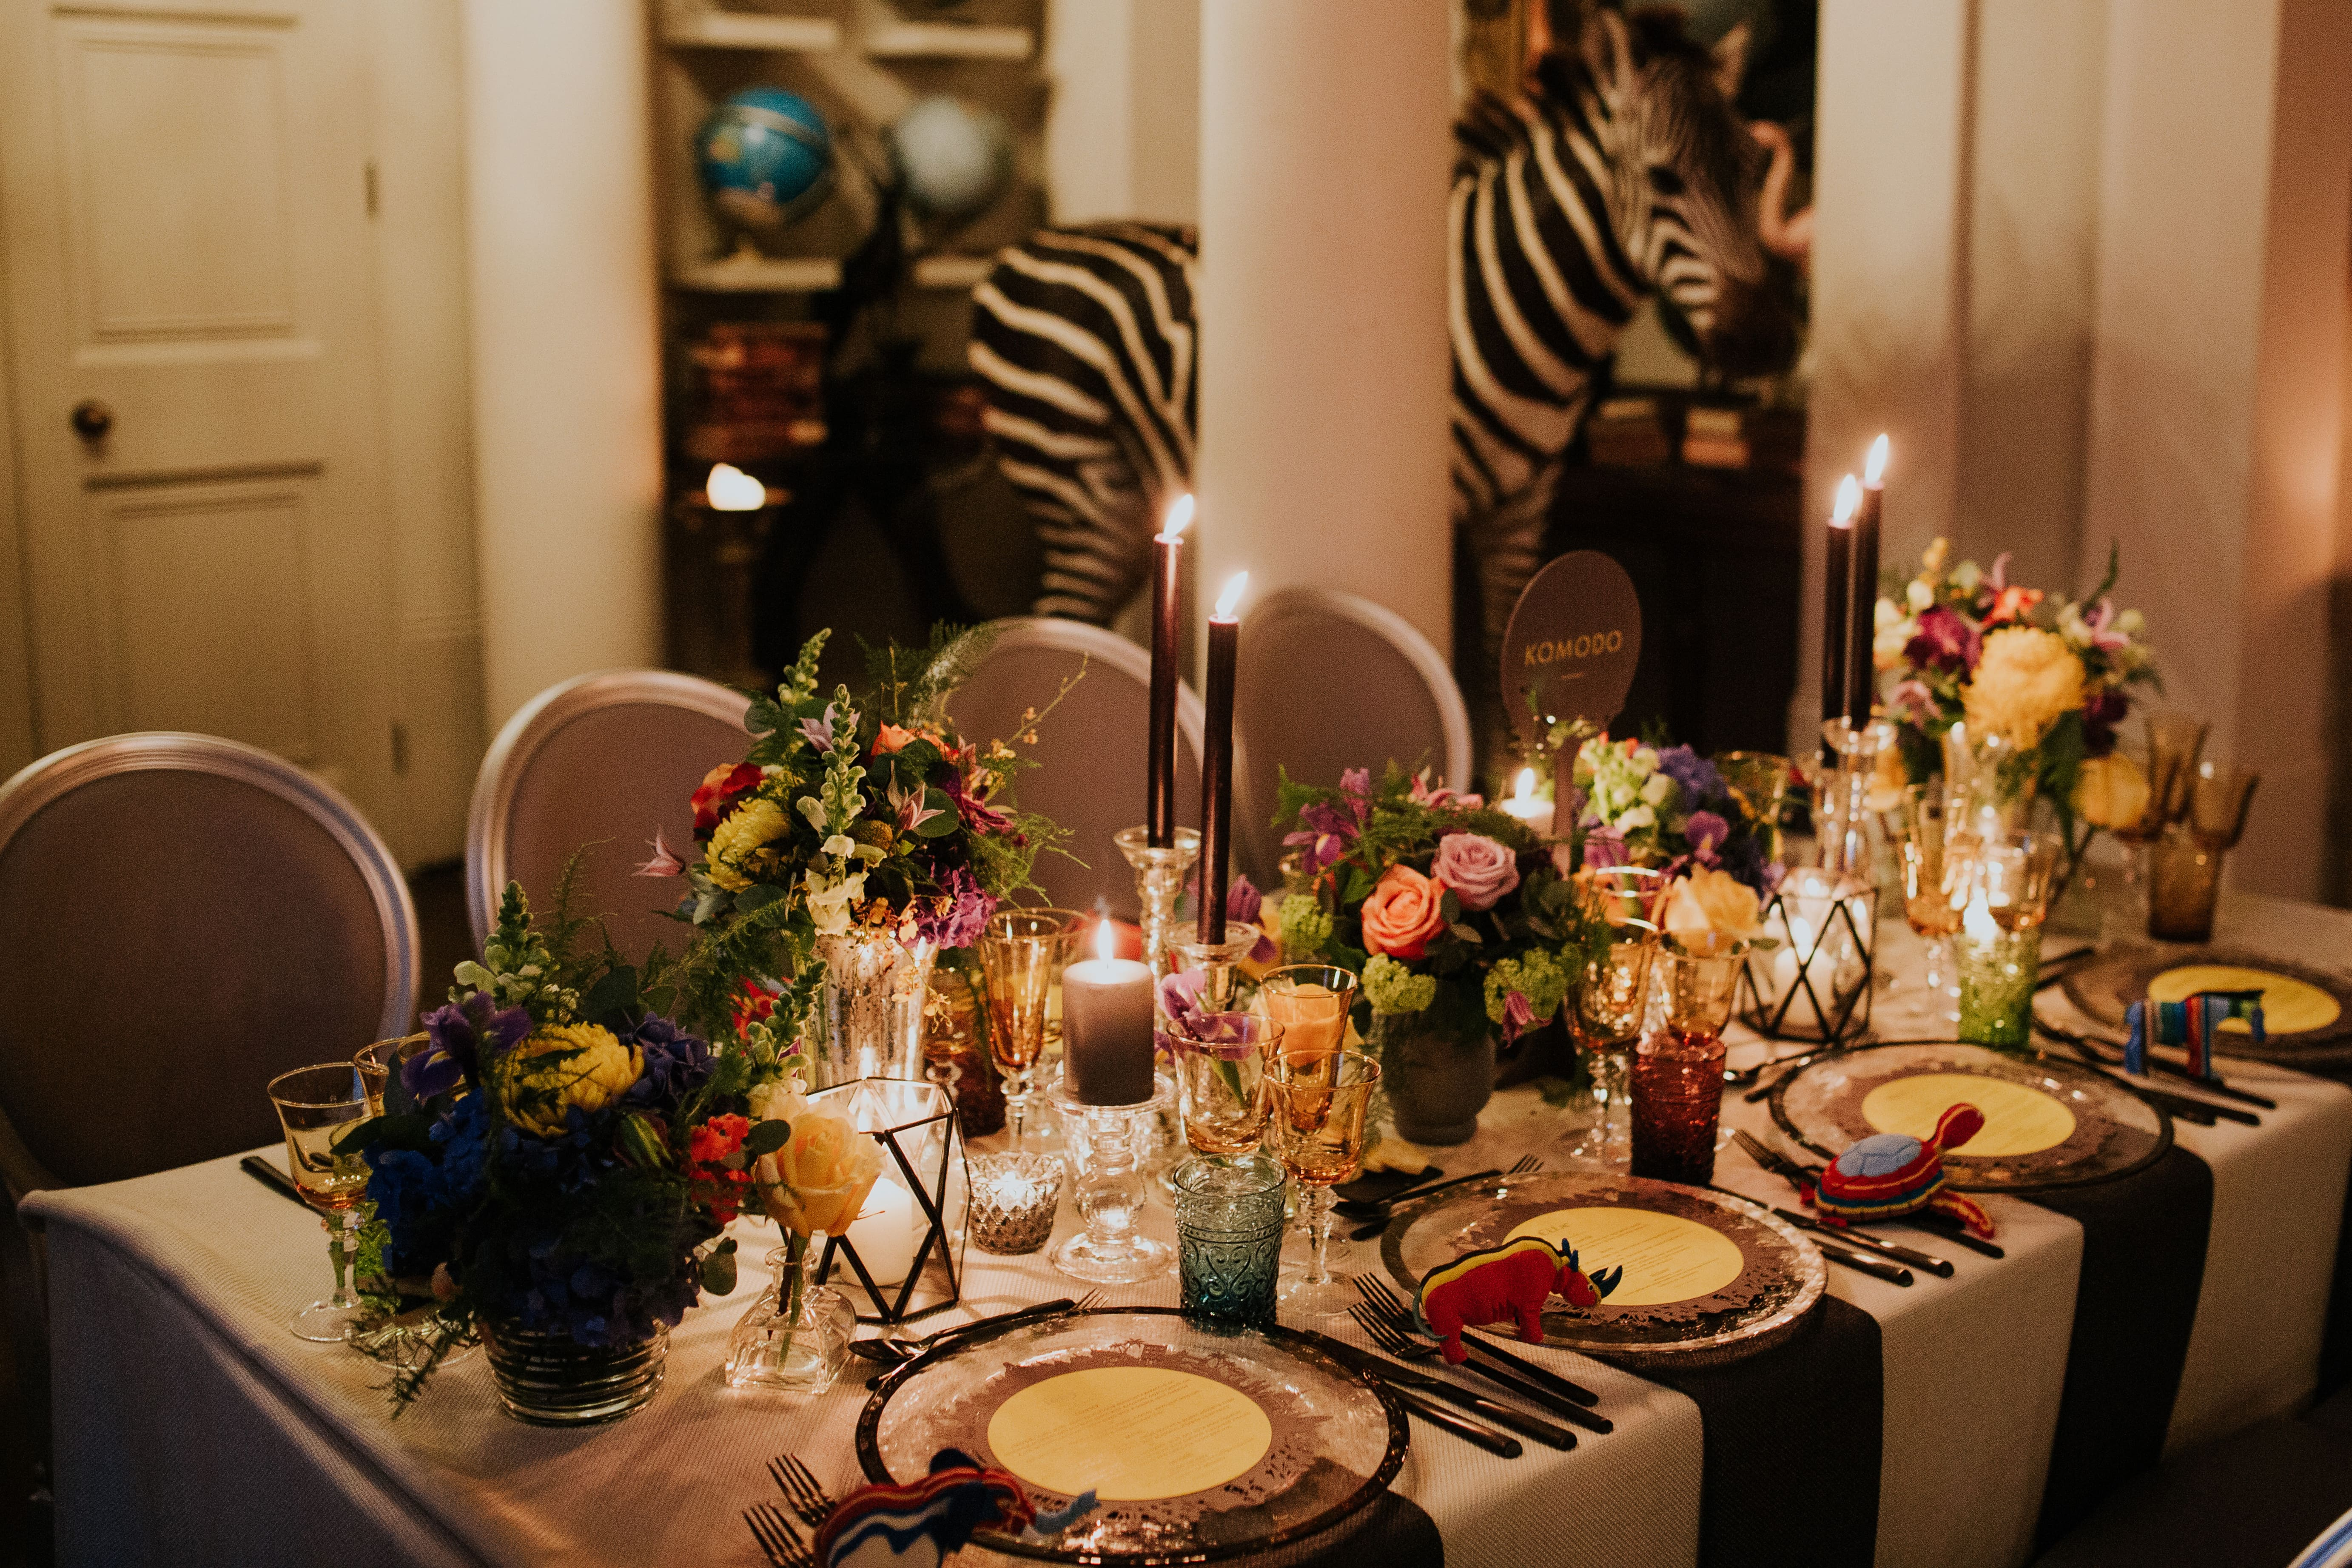 Adding all those little floral finishing touches not only make a fabulous first impression but leave lasting memories for you and your guests.